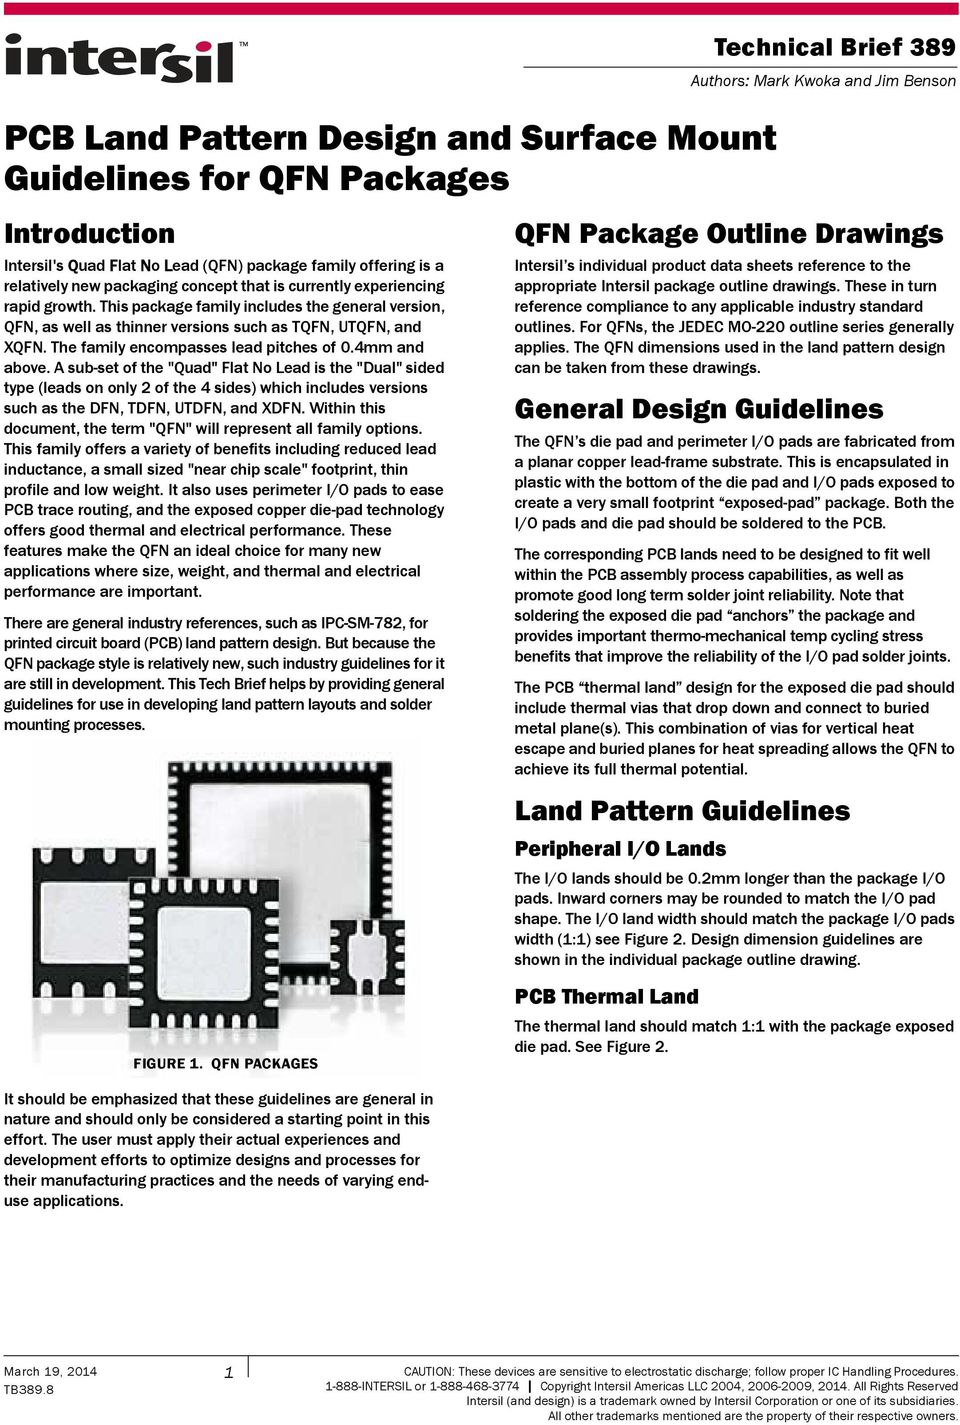 PCB Land Pattern Design and Surface Mount Guidelines for QFN